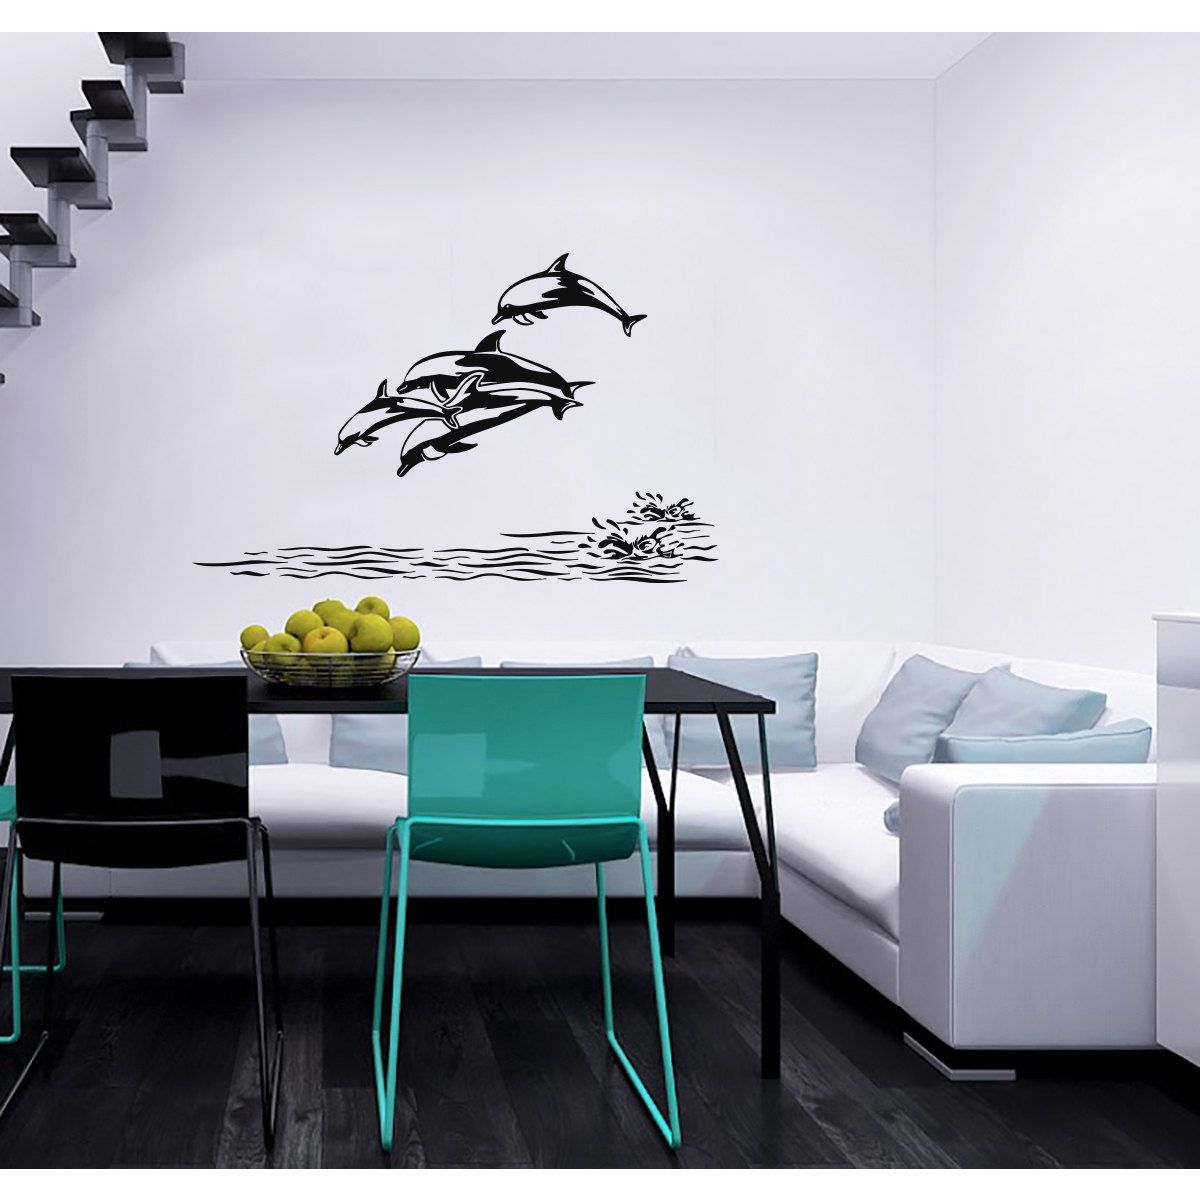 Dolphins Vinyl Sticker Wall Art Products Pinterest Dolphins - Vinyl decals for textured walls